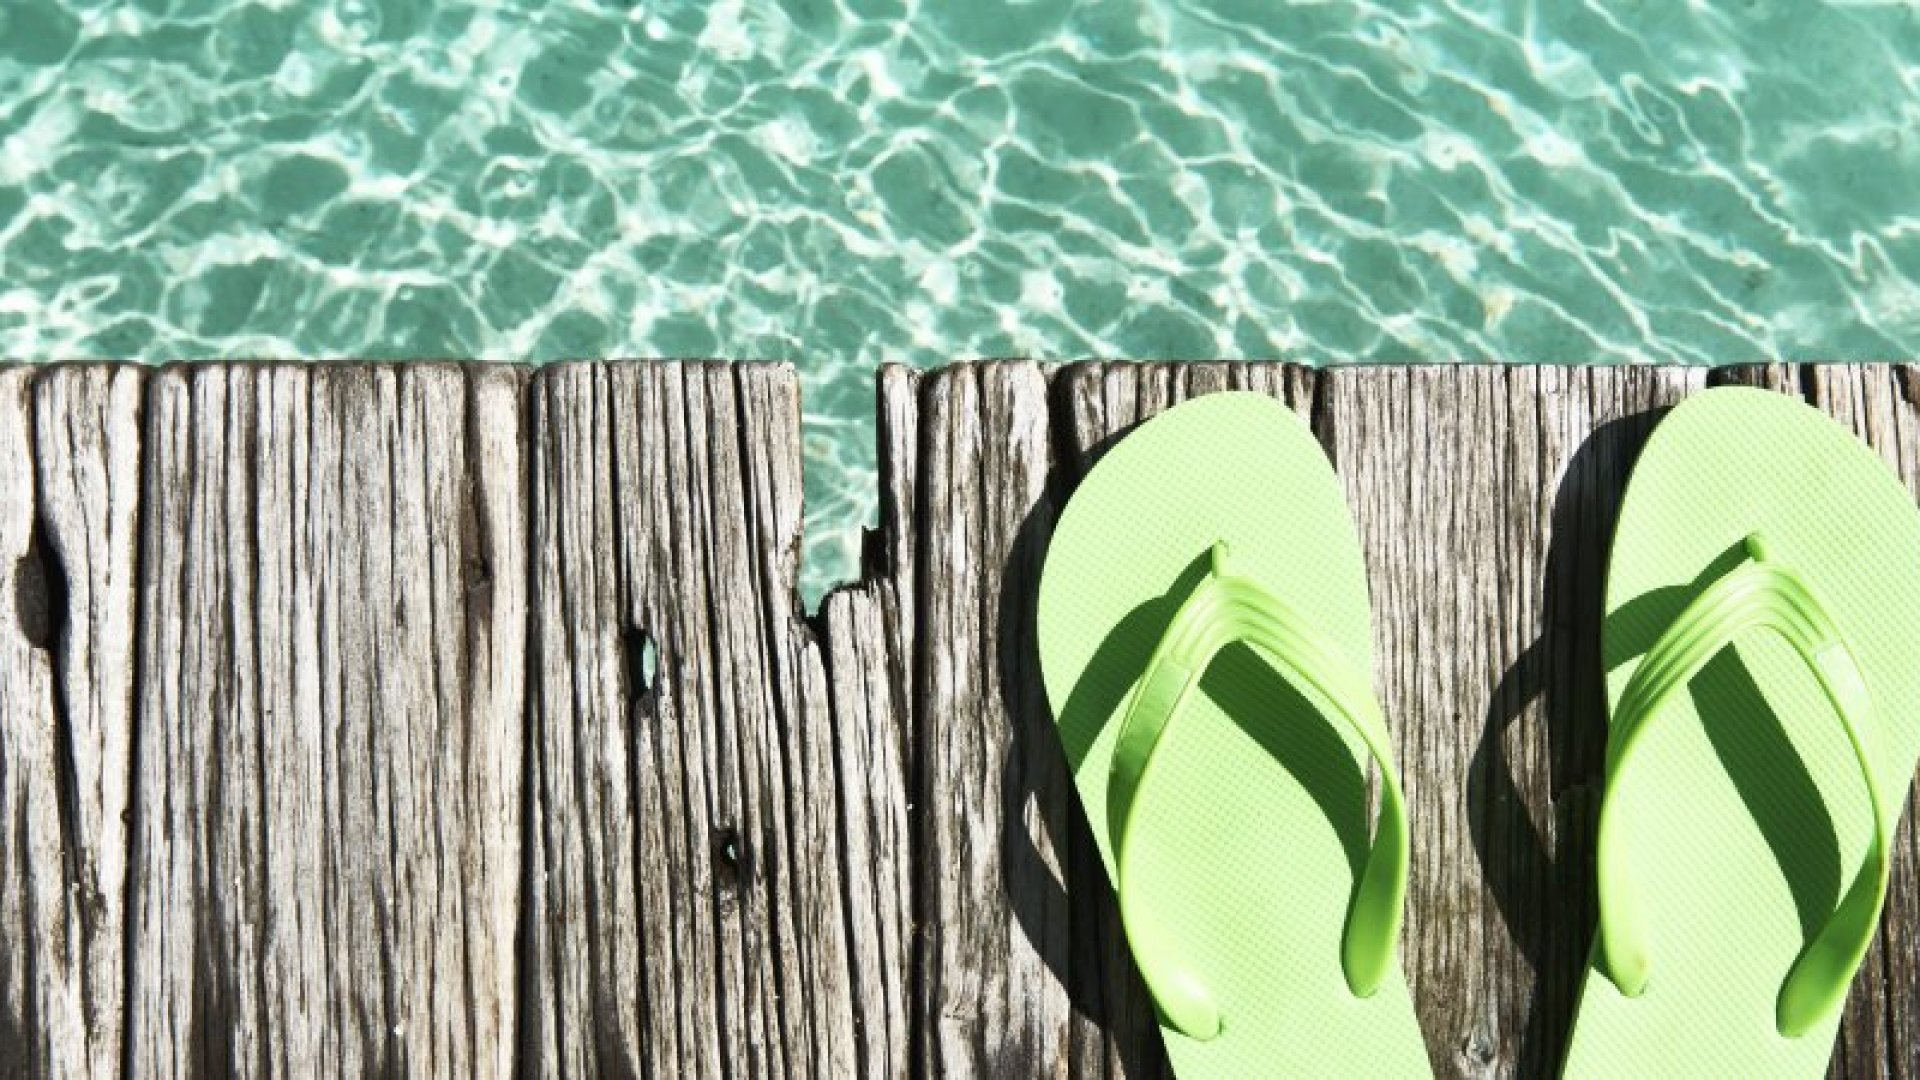 Survey: 42 Percent of Americans Took Zero Vacation Days Last Year